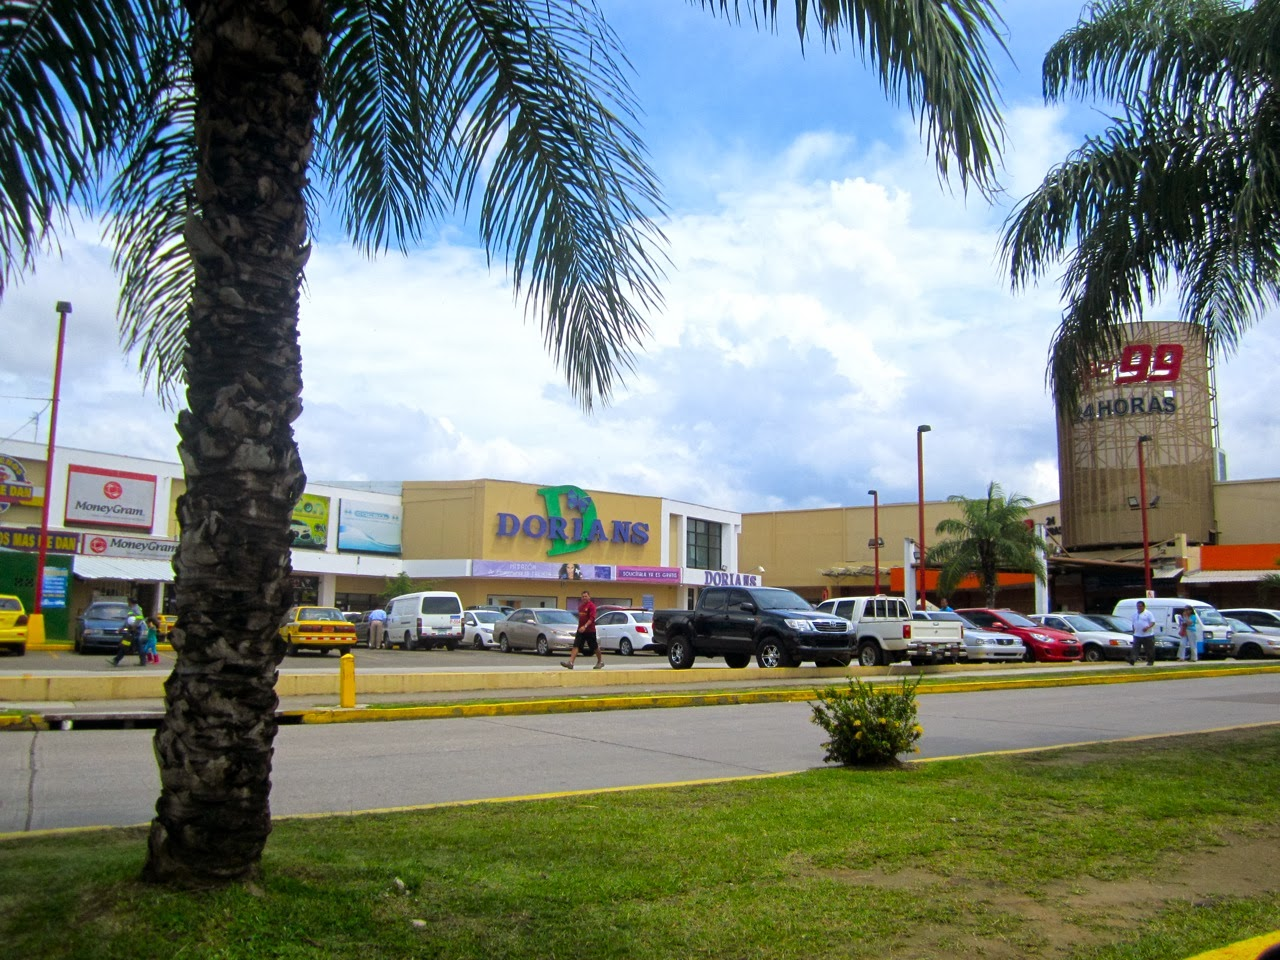 Furniture stores panama city beach fl - You Ll Find Everything Here From Clothing Stores To Electronics Stores To A Supermarket